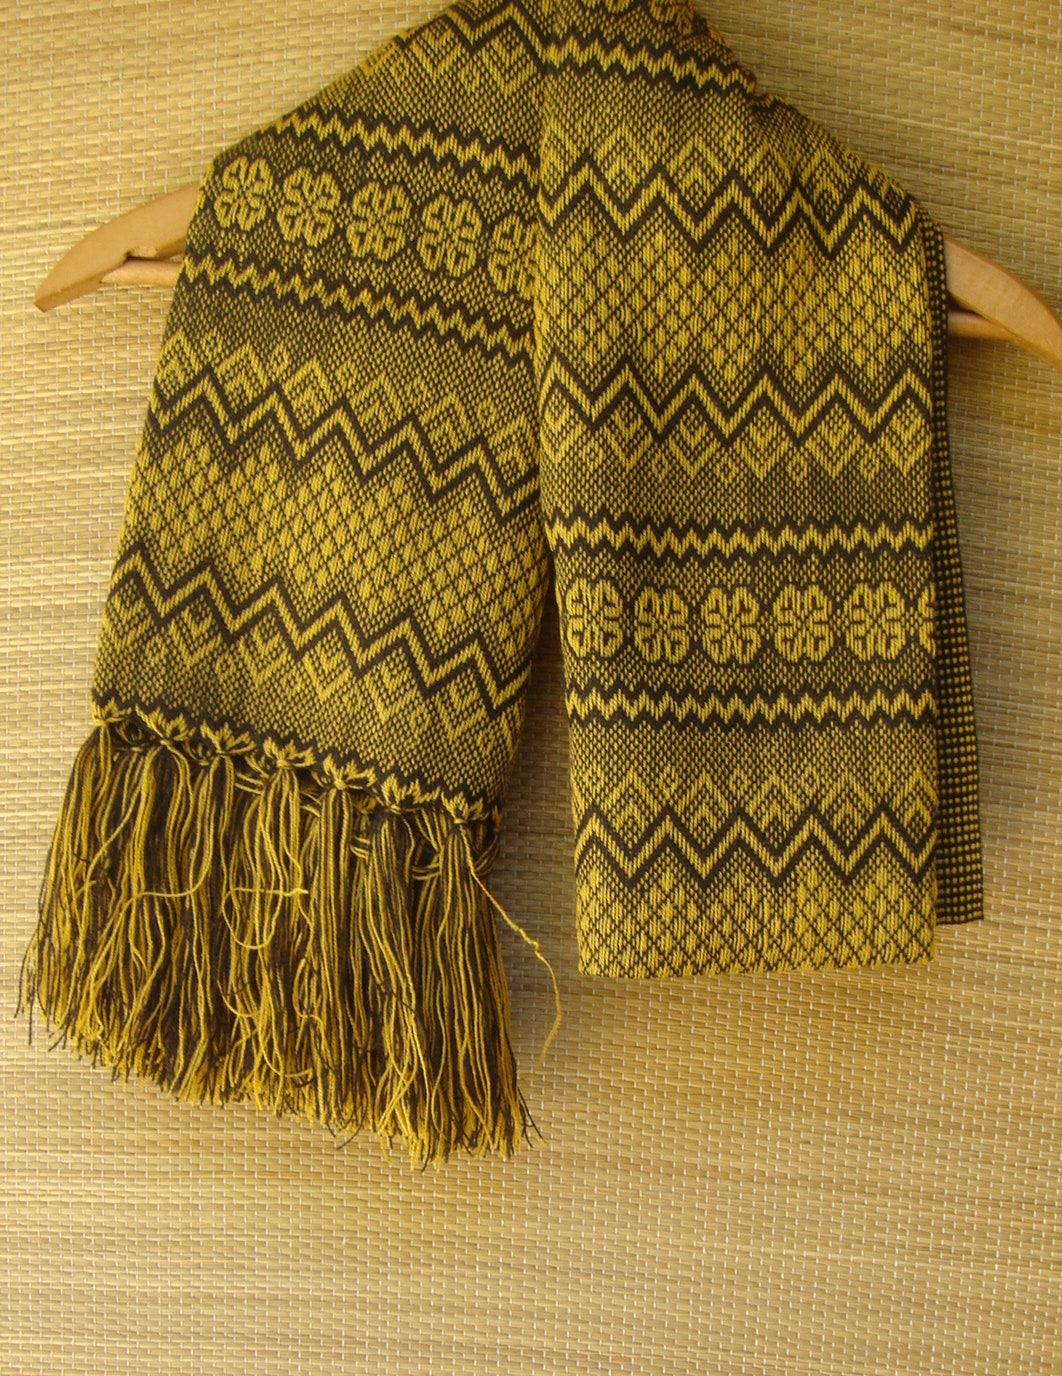 Mexican Golden Rebozo Shawl Yarn Geometric Woven